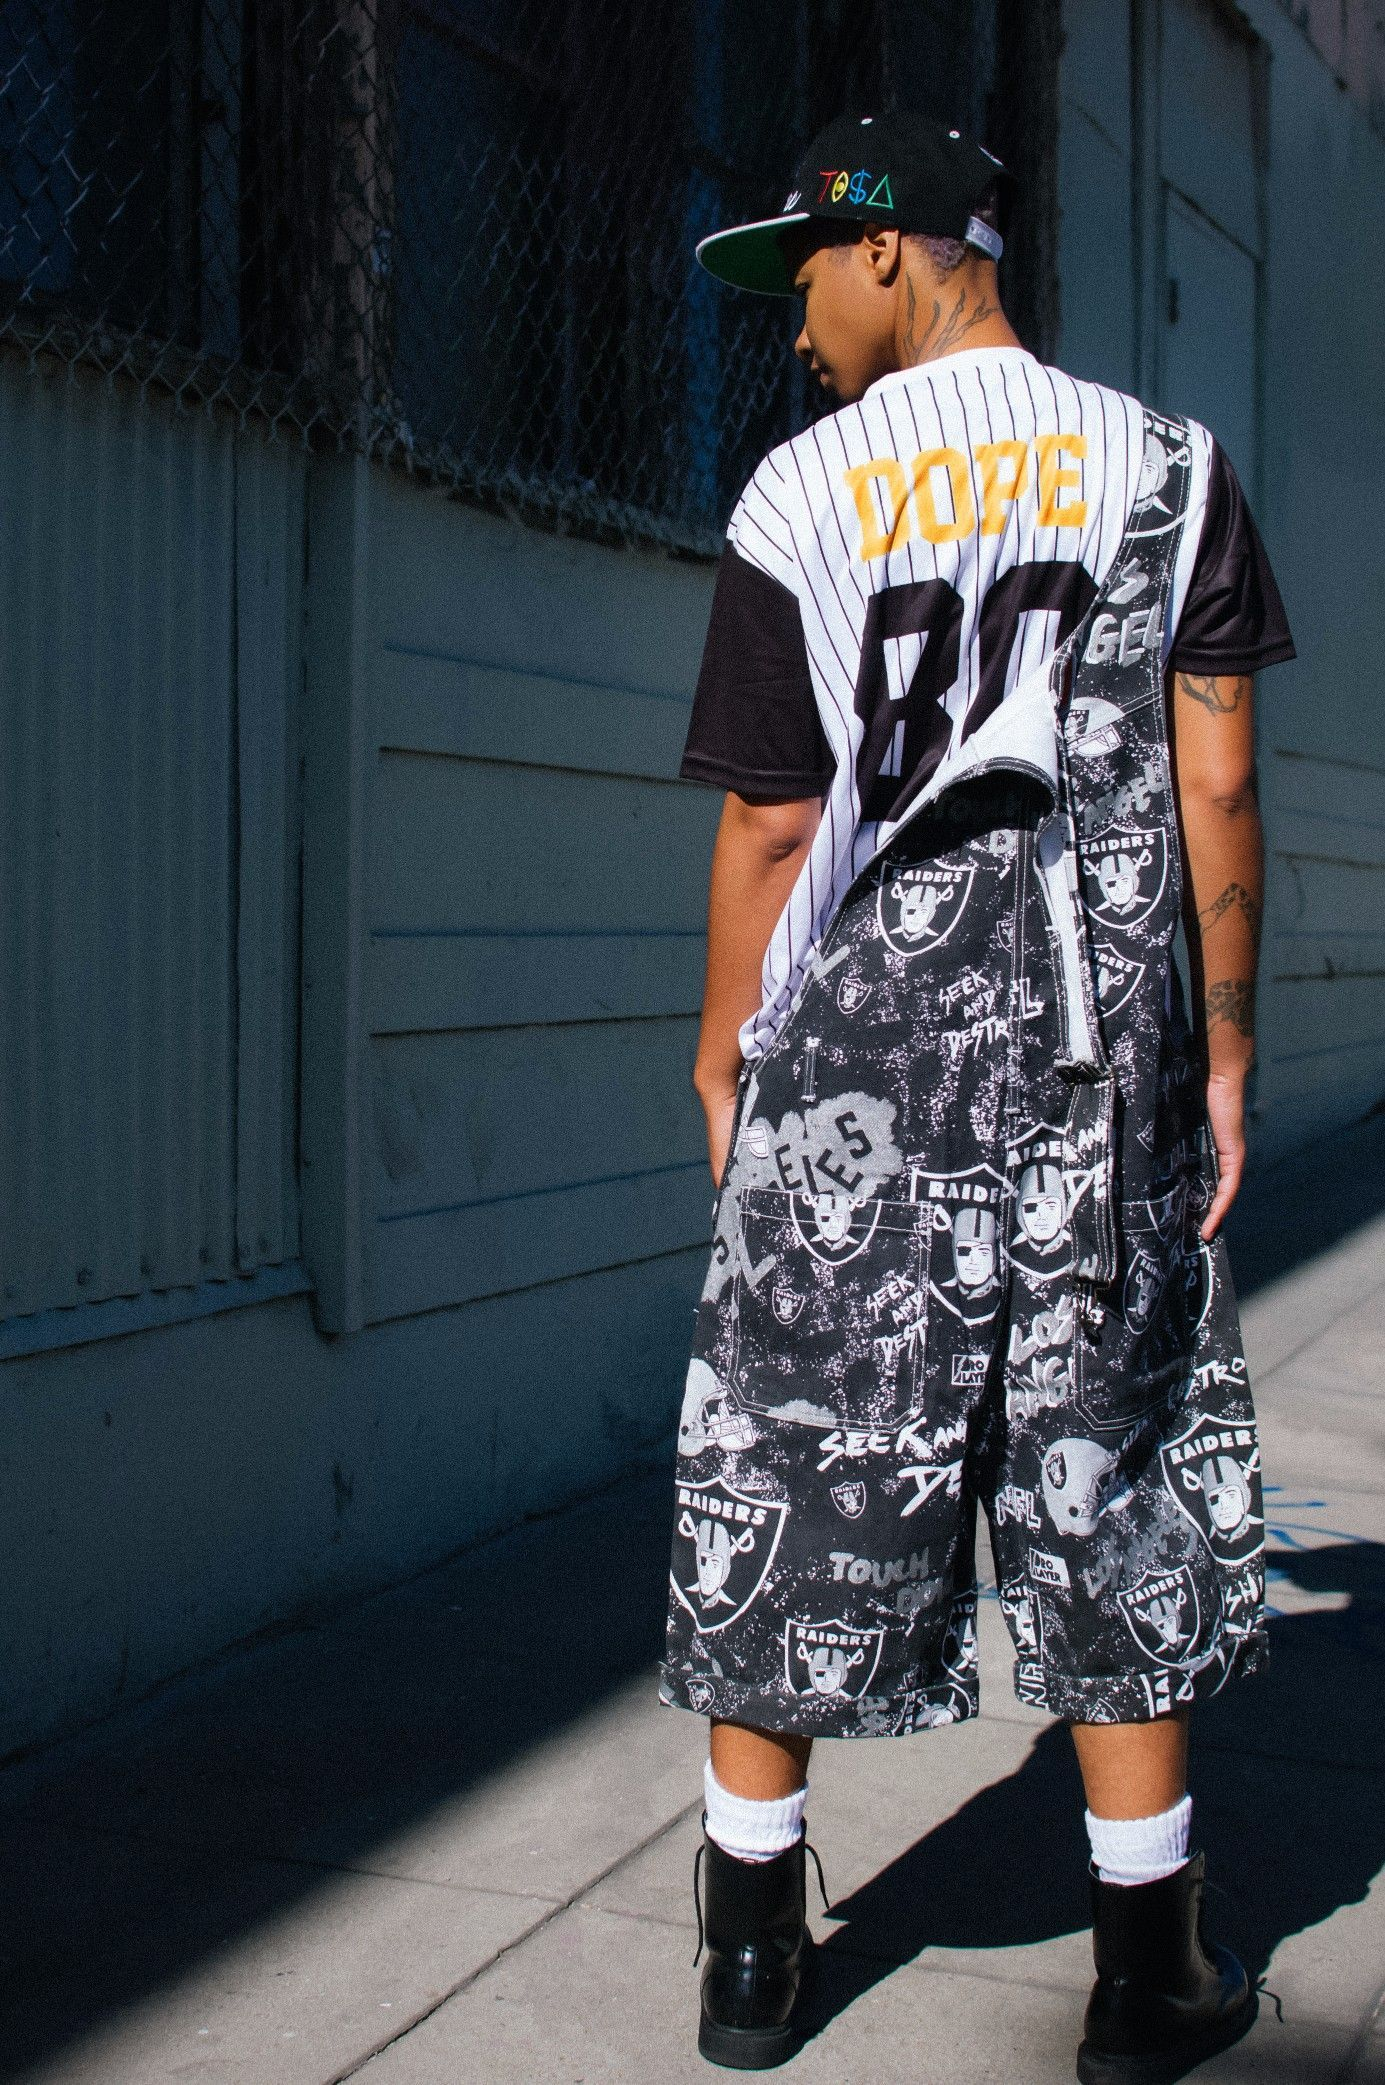 44a00ea17 80s and 90s Fashion ~ Hella Thrifty Dope Baseball Jersey inspired by White  Sox and 1990s Thrift Oakland Raiders Overalls with TI$A (TISA) Snapback  worn by ...